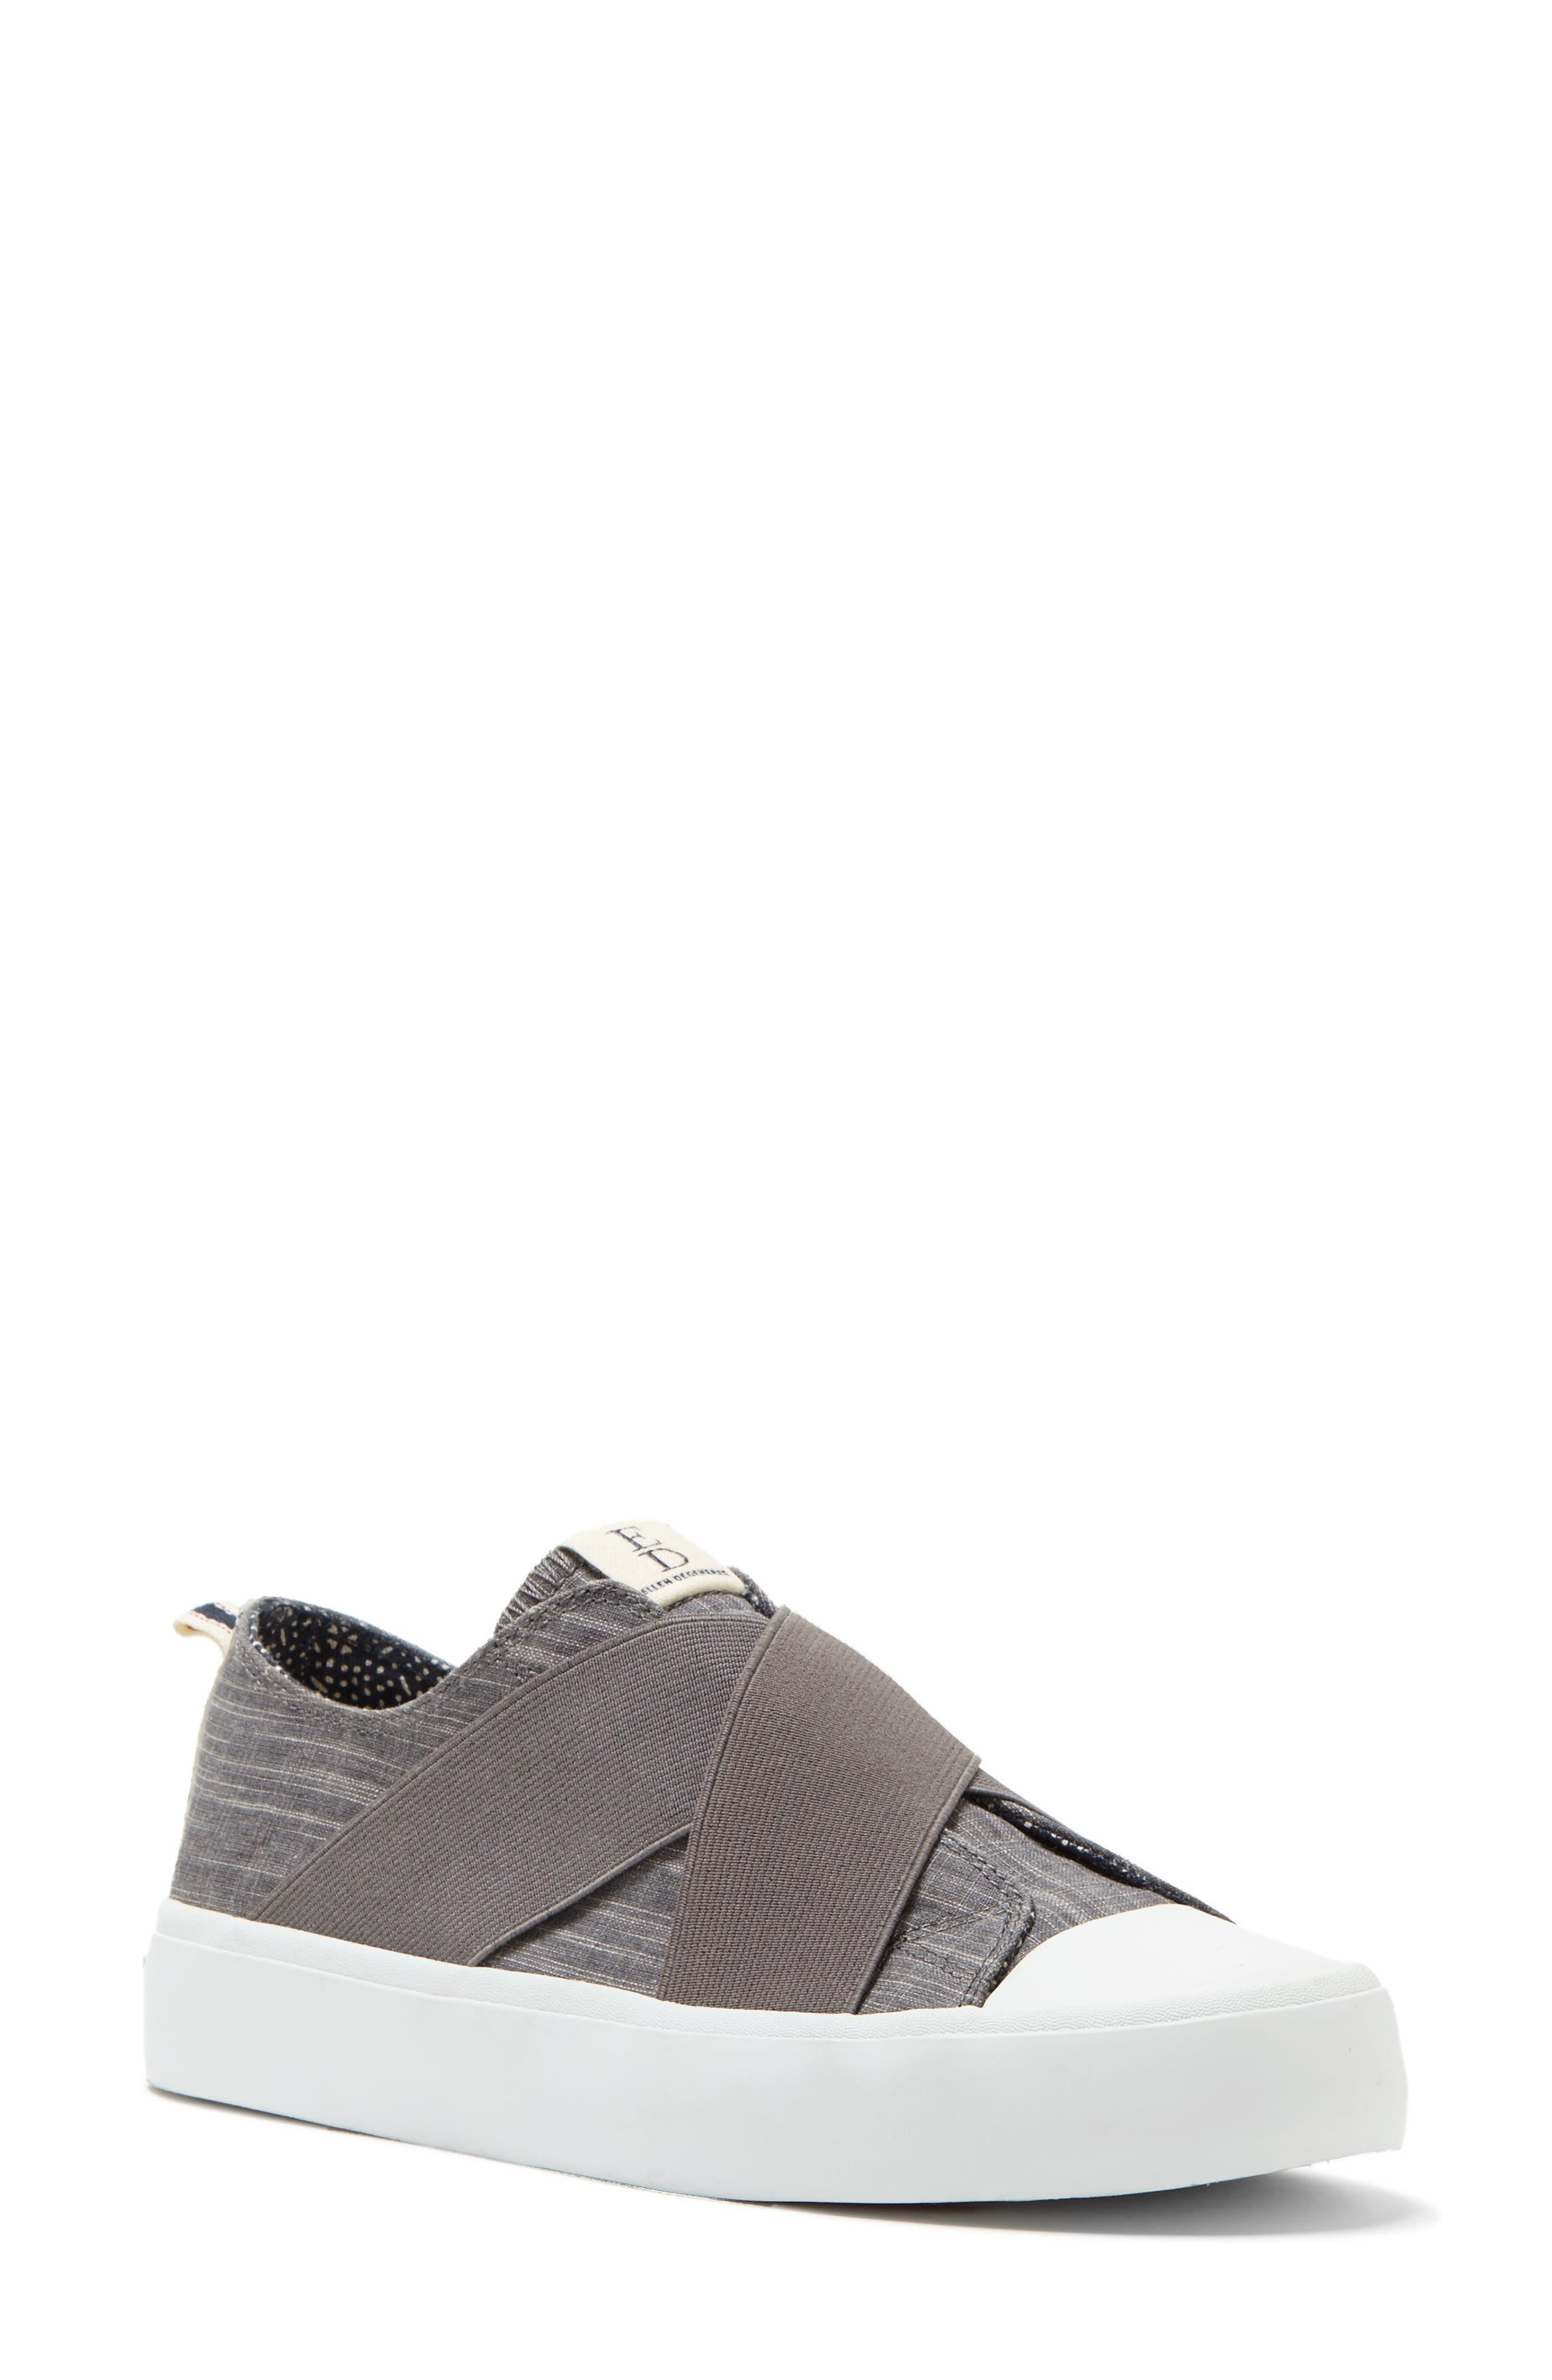 Daichi Slip-On Sneaker,                         Main,                         color, 030